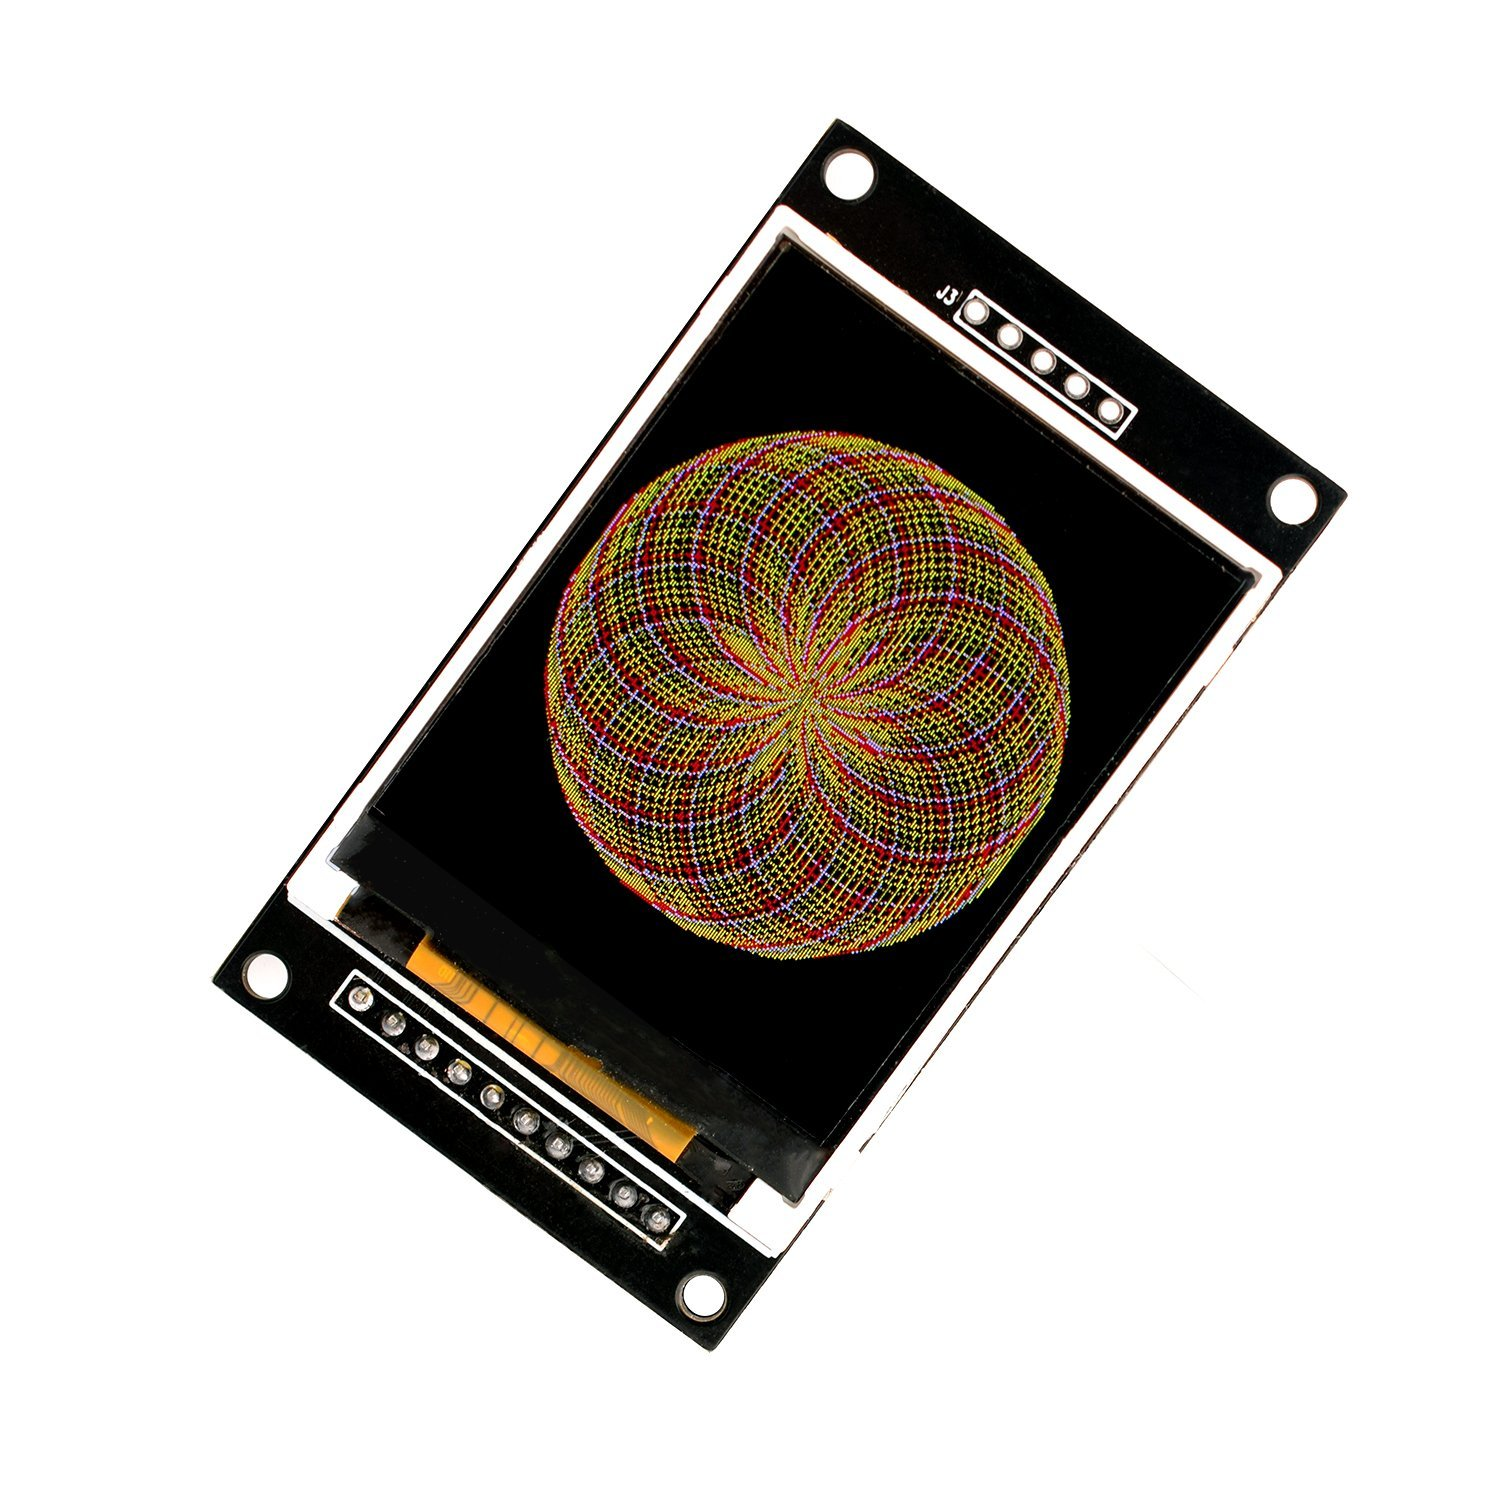 Microyum 20 Inch Spi Tft Screen Lcd Display Module Circuit Panic Android Games 365 Free Download With Sd Card Socket For Arduino Esp8266 Nodemcu 51 Stm32 Full Library And Supports